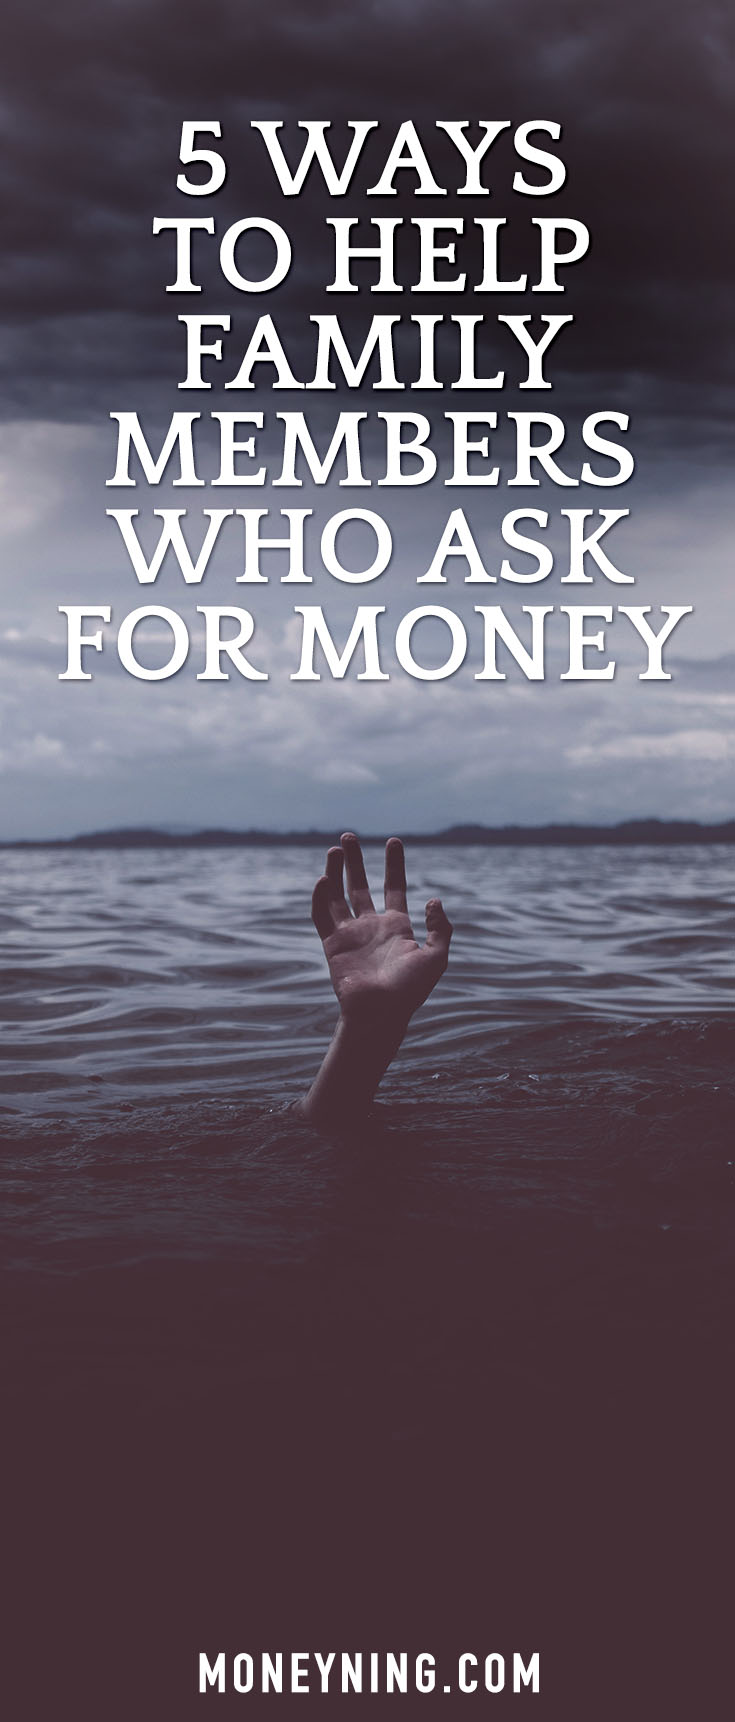 5 Ideas To Help Family Members Who Ask For Money